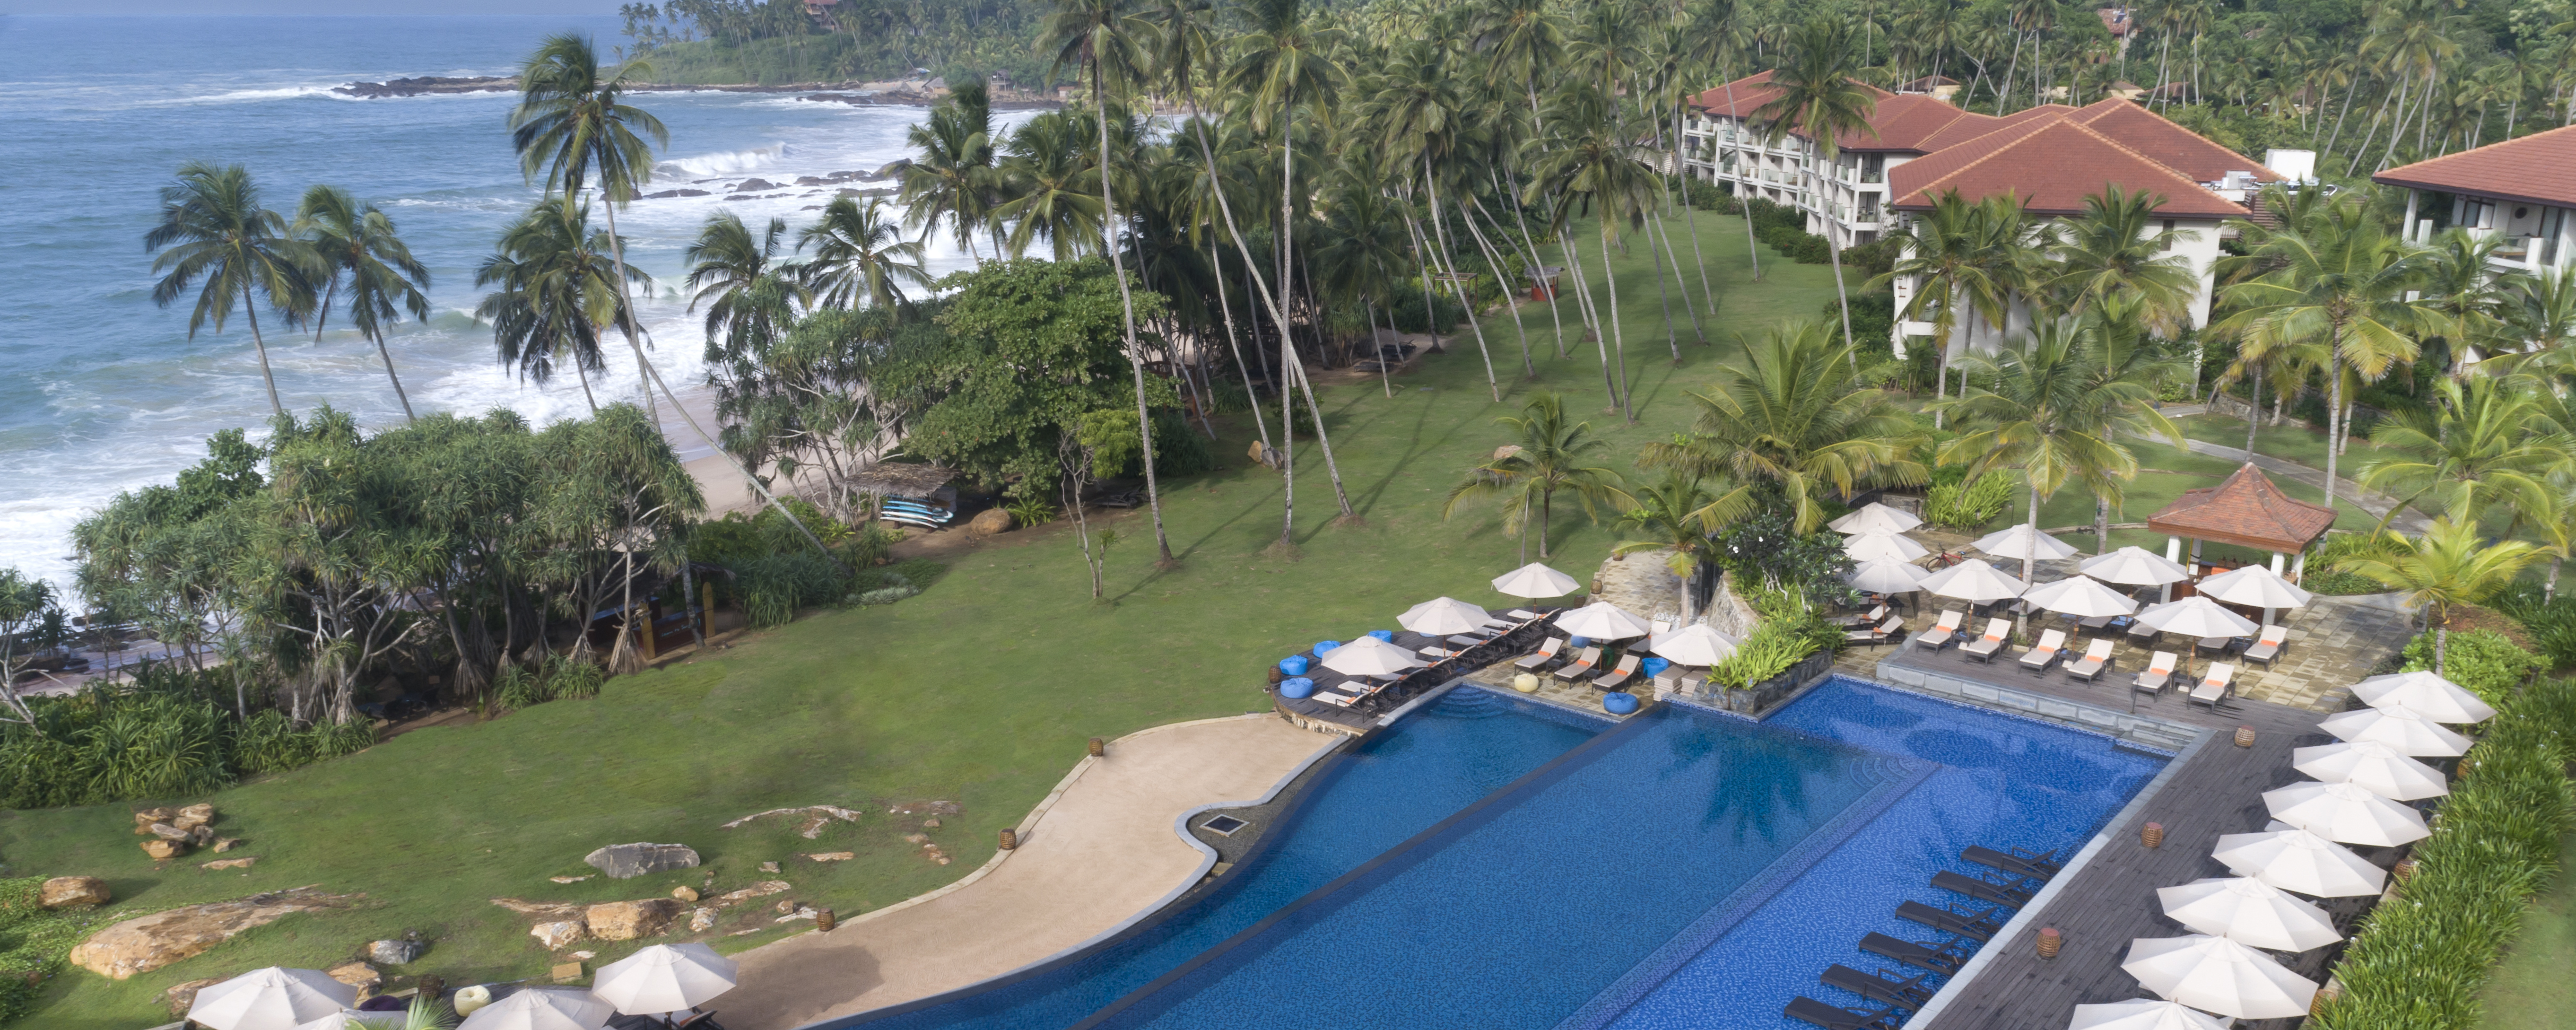 Aerial-view-anantara-peace-haven